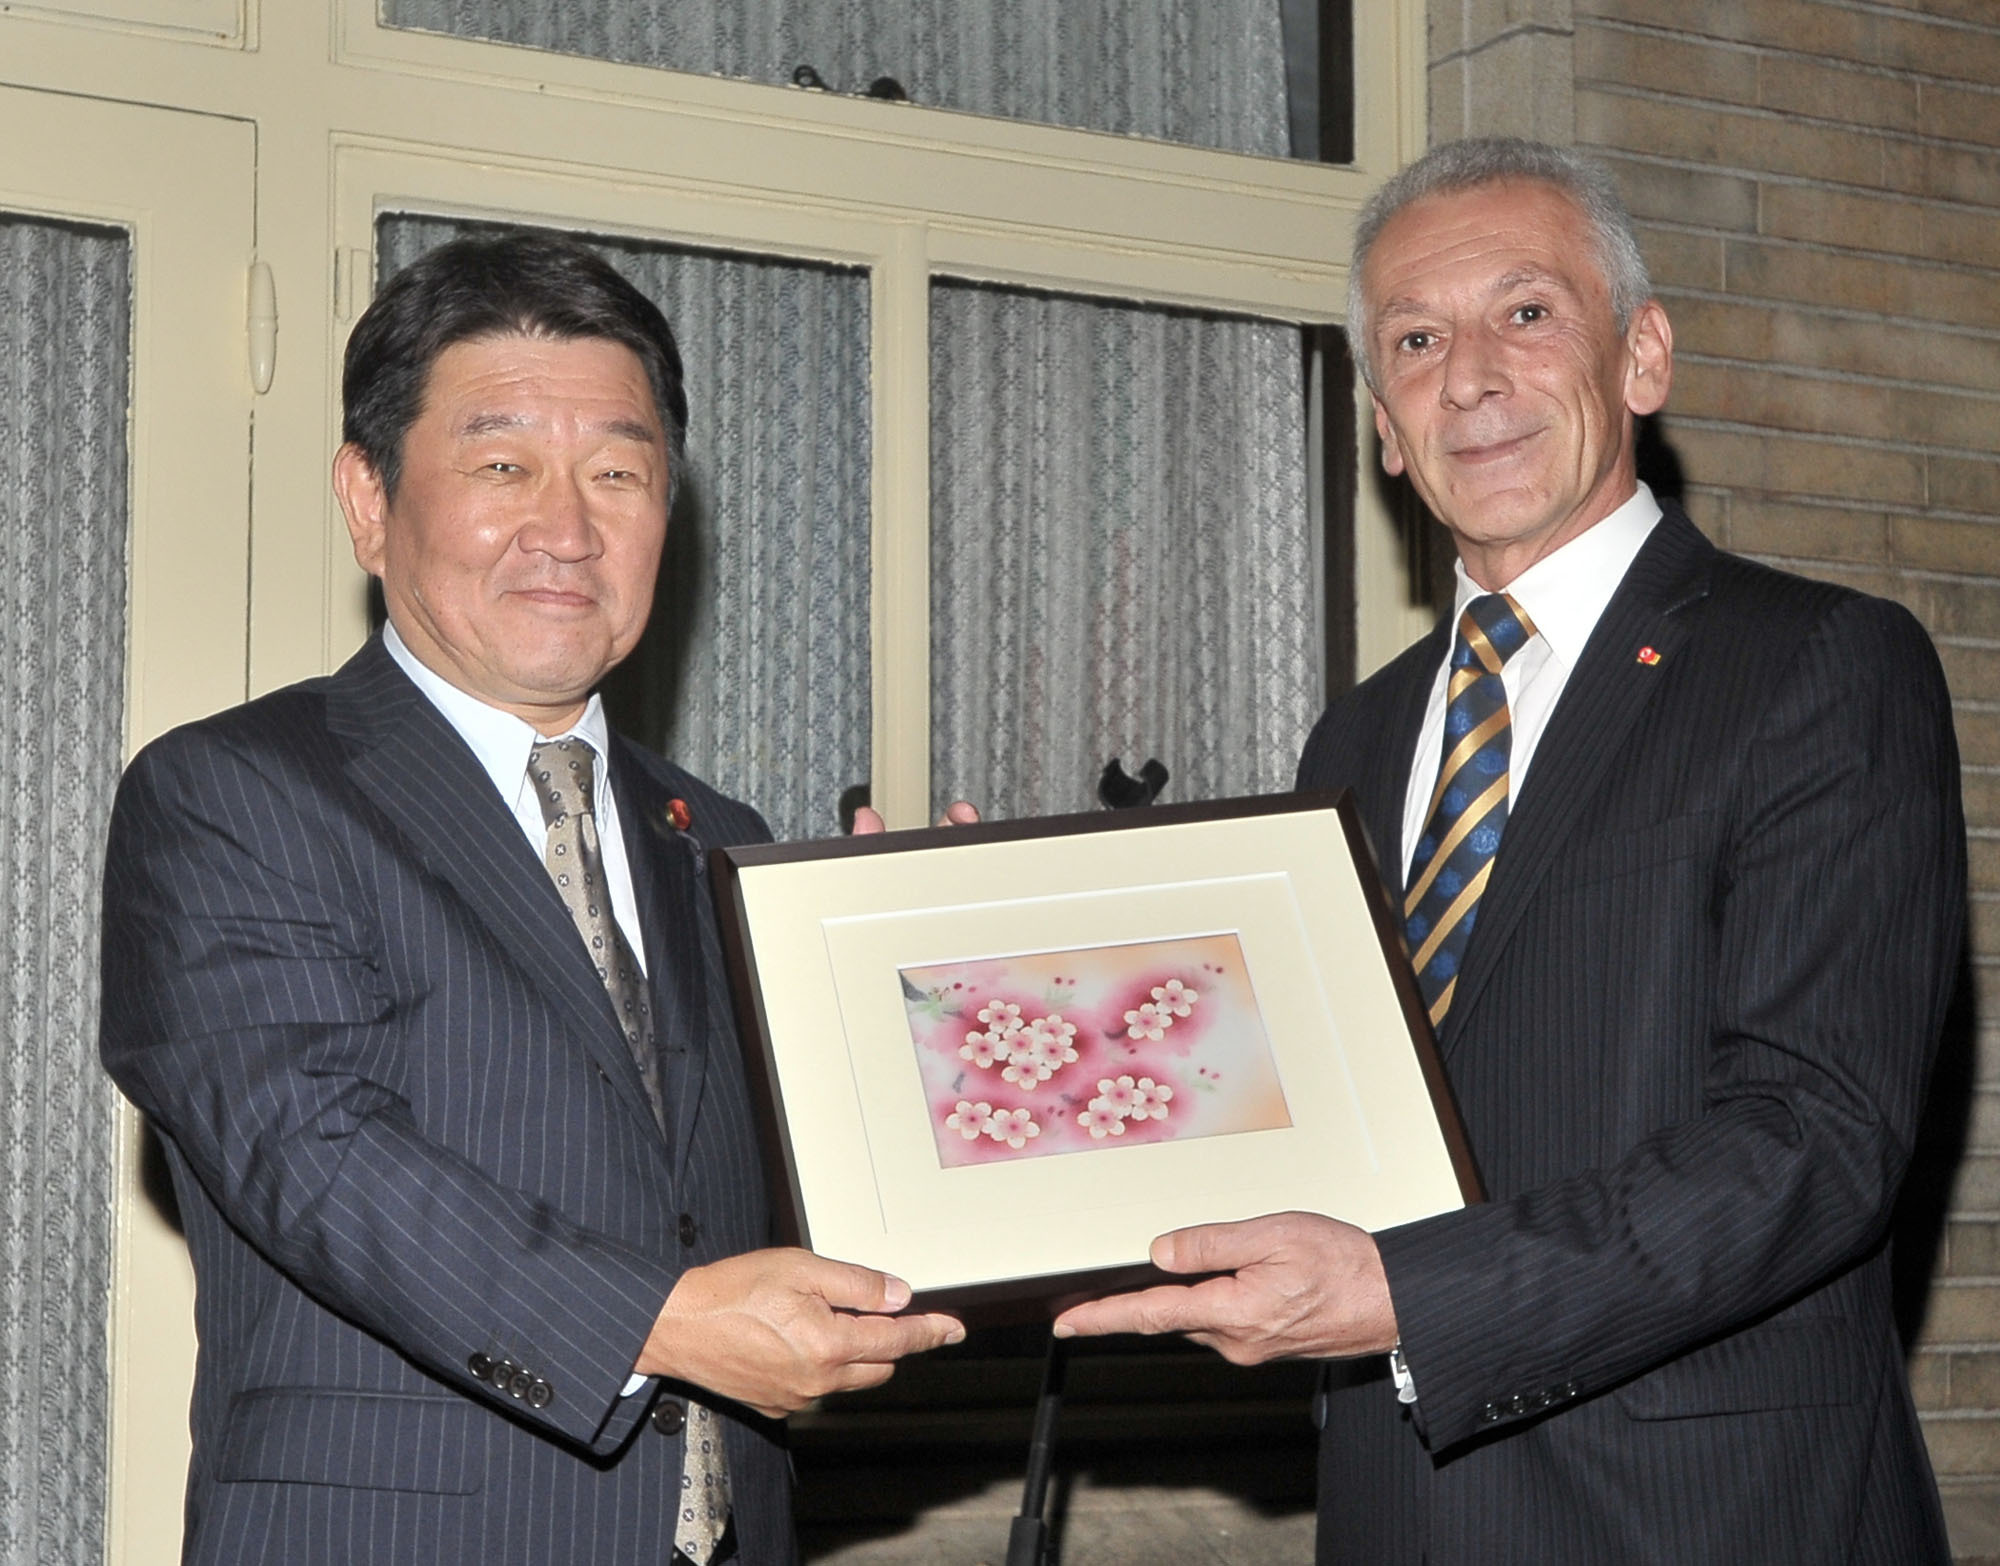 Bulgaria's Ambassador Georgi Vassilev (right) receives a sakura  print from Toshimitsu Motegi, chairman of Japan-Bulgaria Parliamentary Friendship League and Liberal Democratic Party Policy Research Council, during a farewell reception for Vassilev at the ambassador's residence in Tokyo on Sept. 29. | YOSHIAKI MIURA